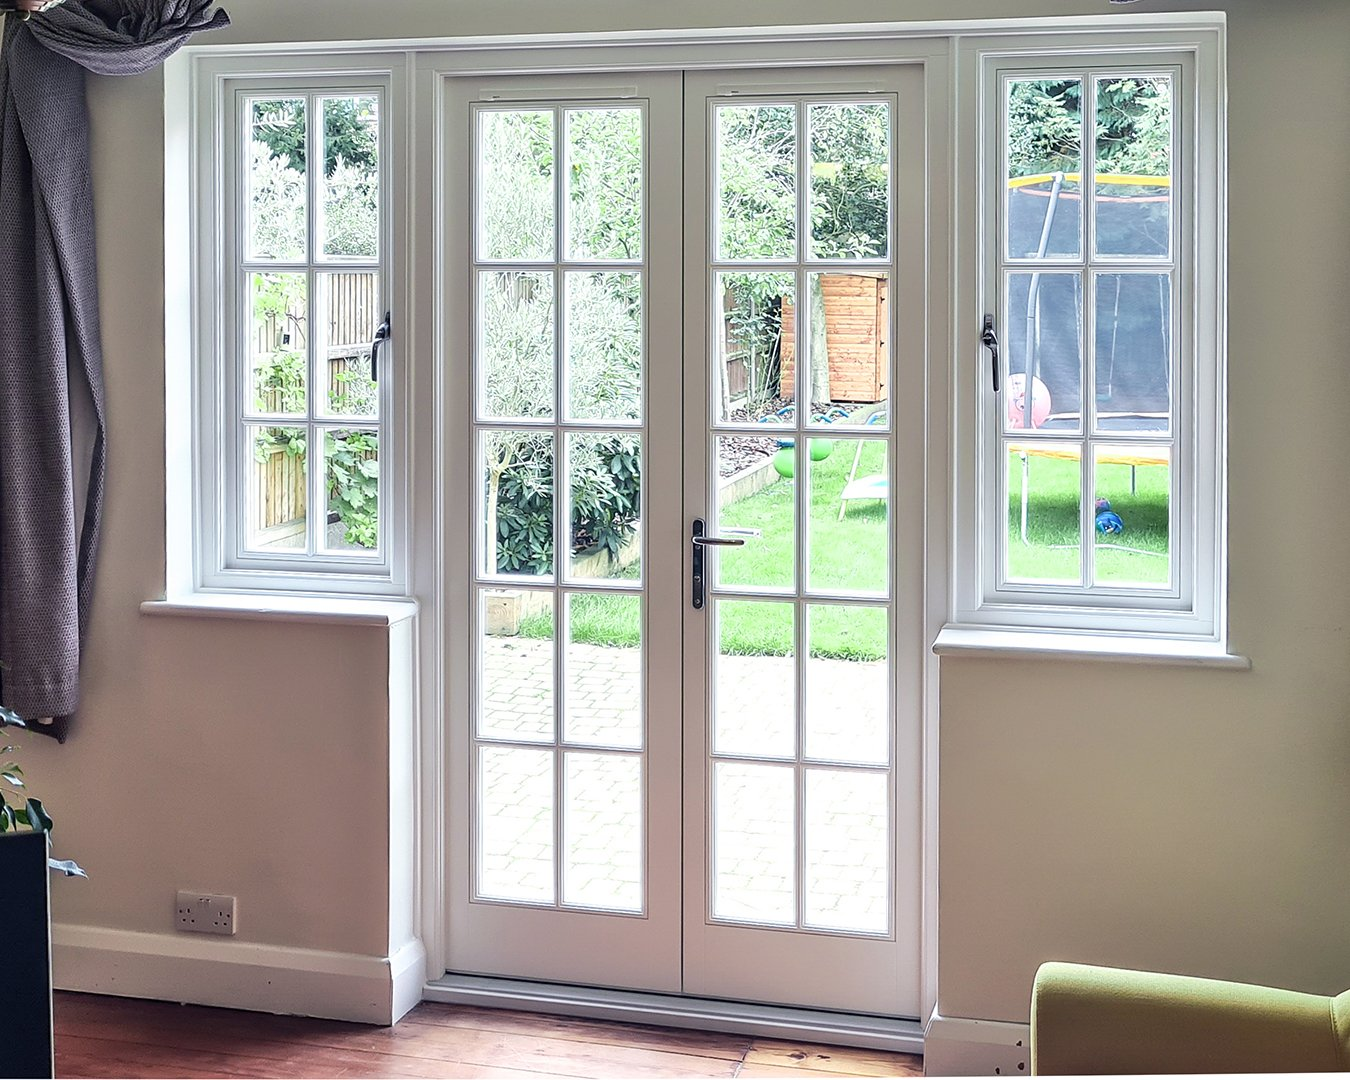 Timber French Doors with Georgian Bars and sidelights